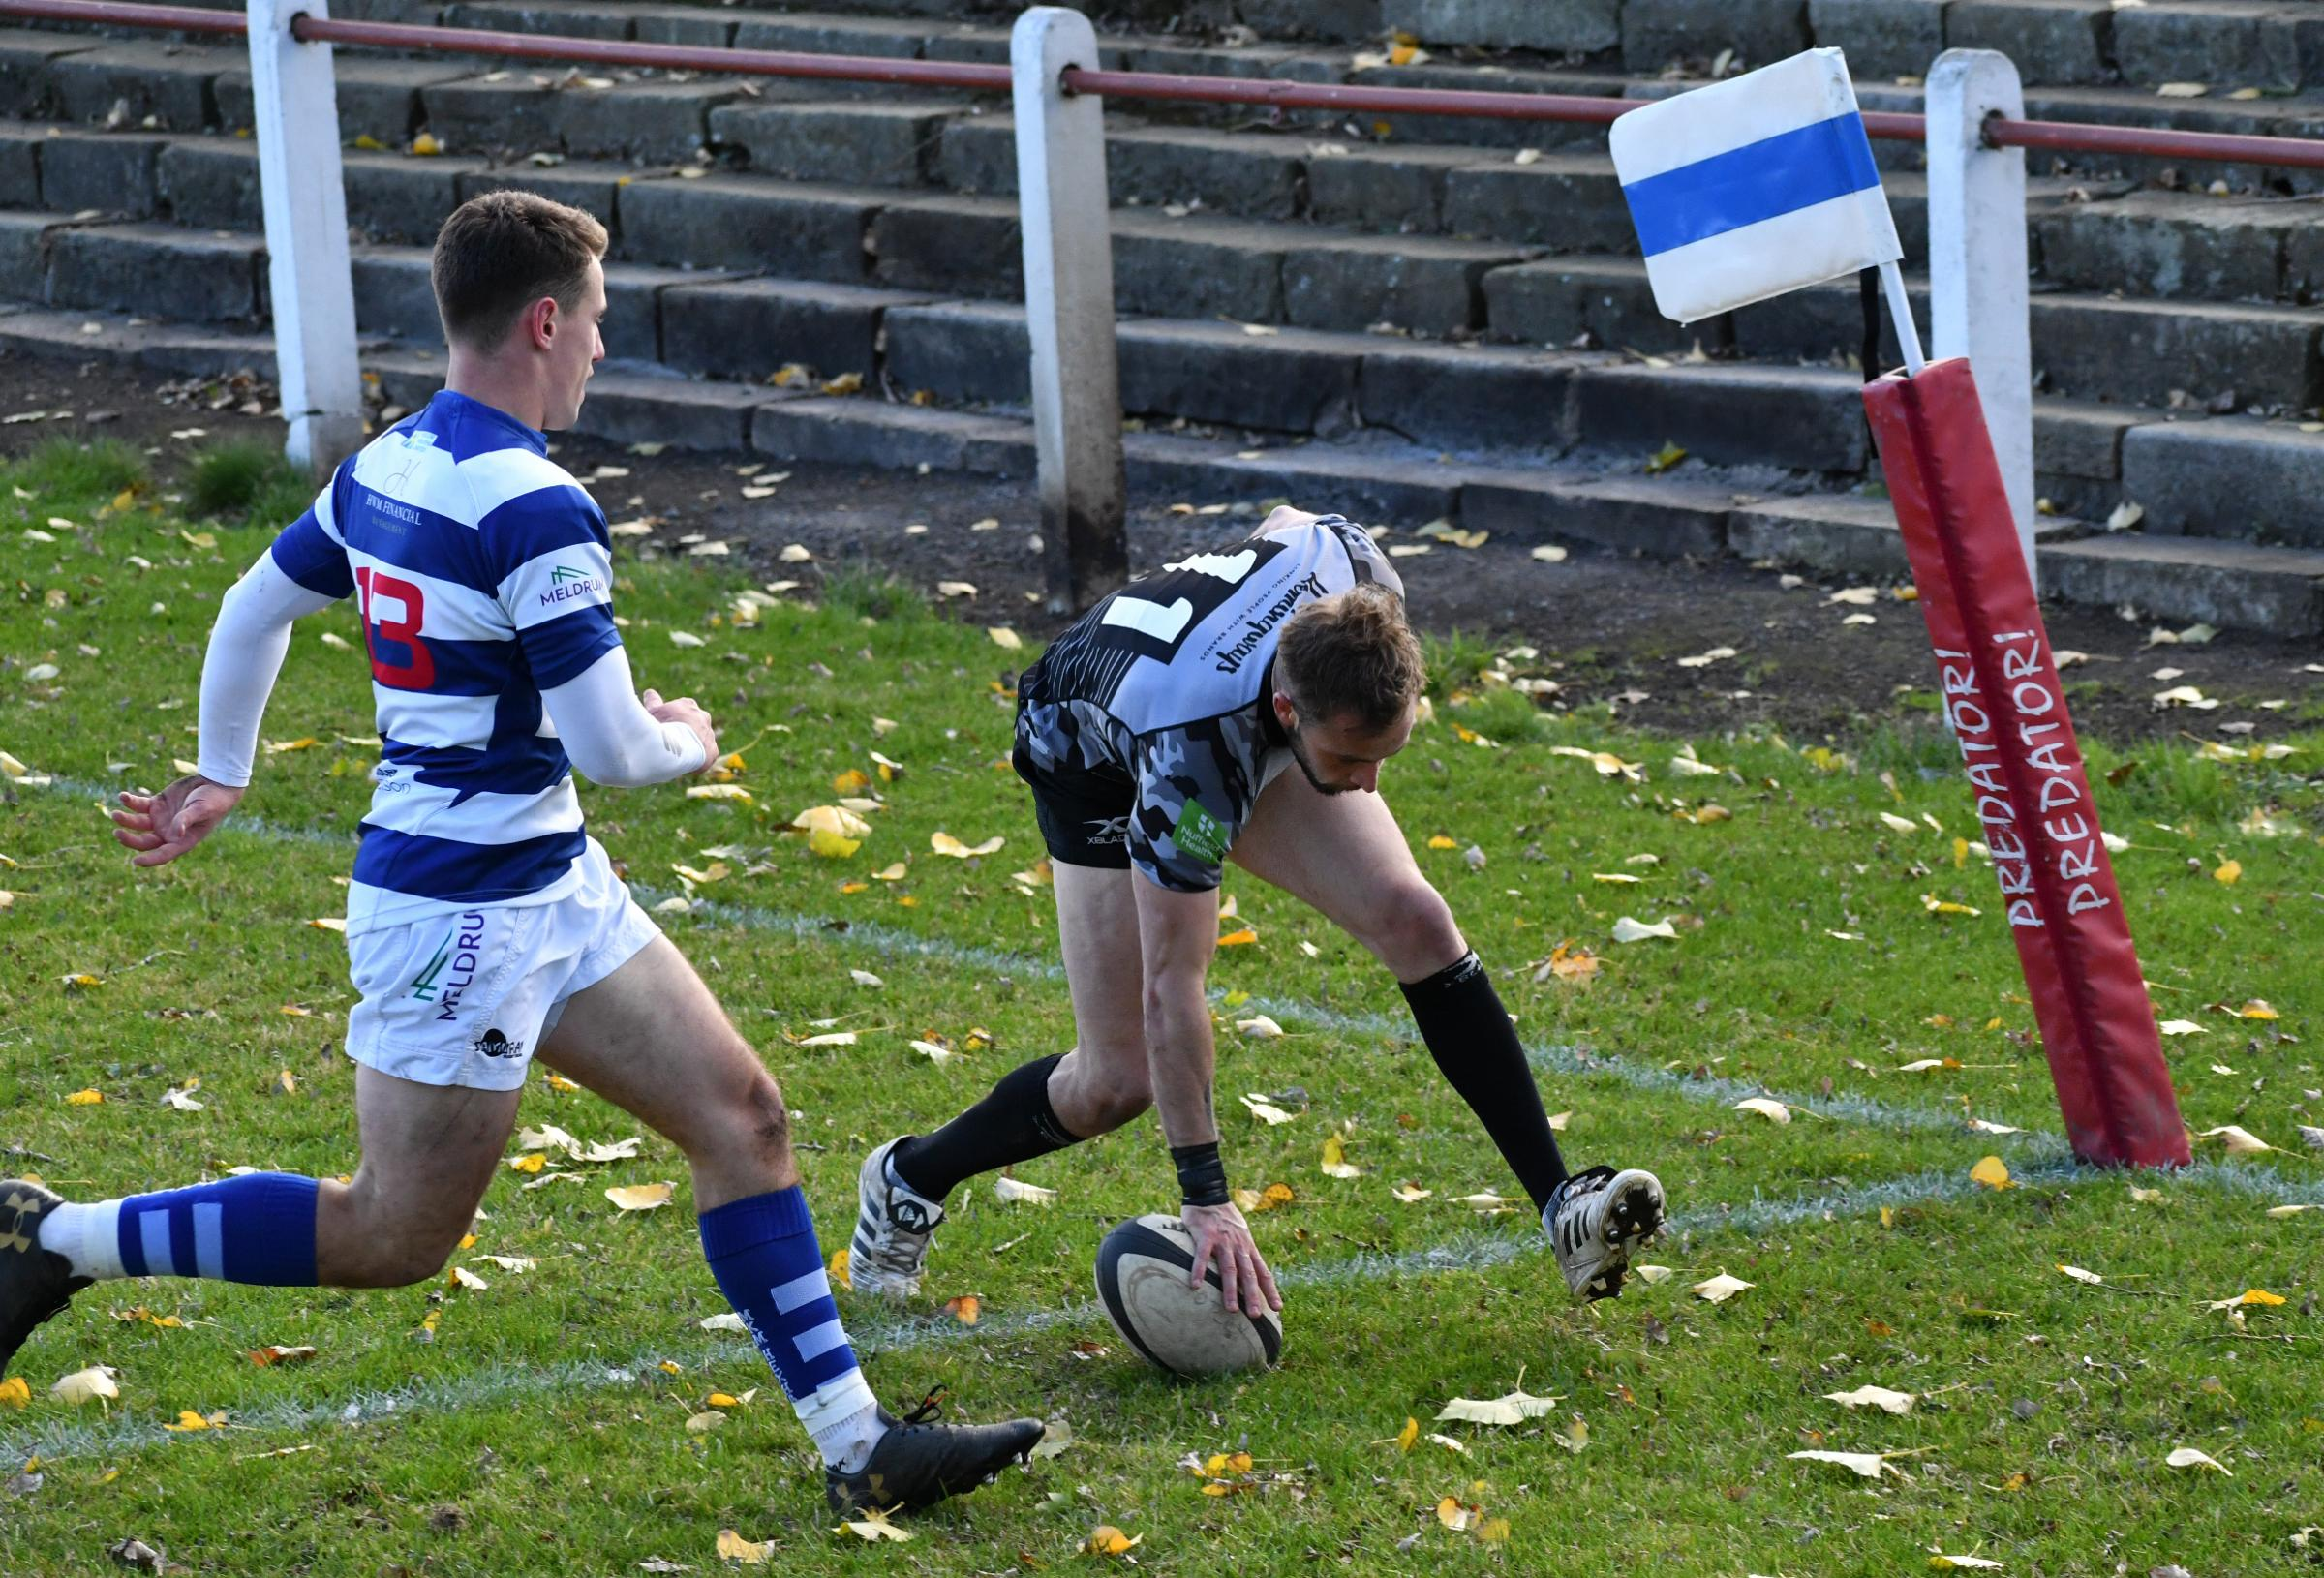 Stephen Nolson scored an early try as Otley blew Stourbridge away early on Picture: Richard Leach.